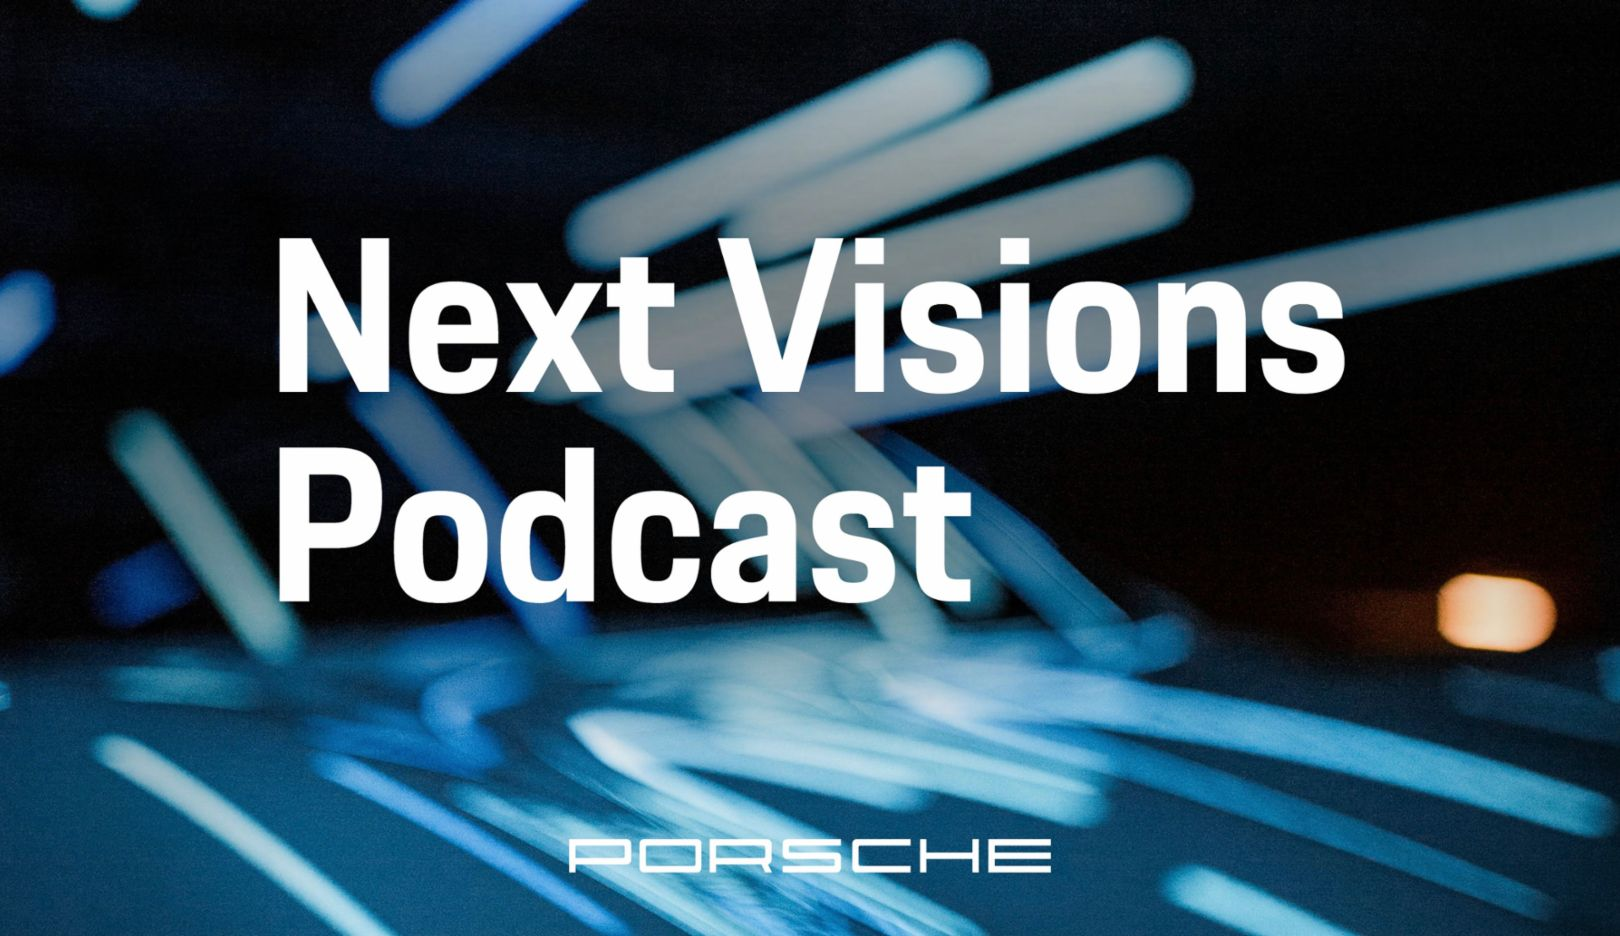 Next Visions Podcast, 2020, Porsche AG